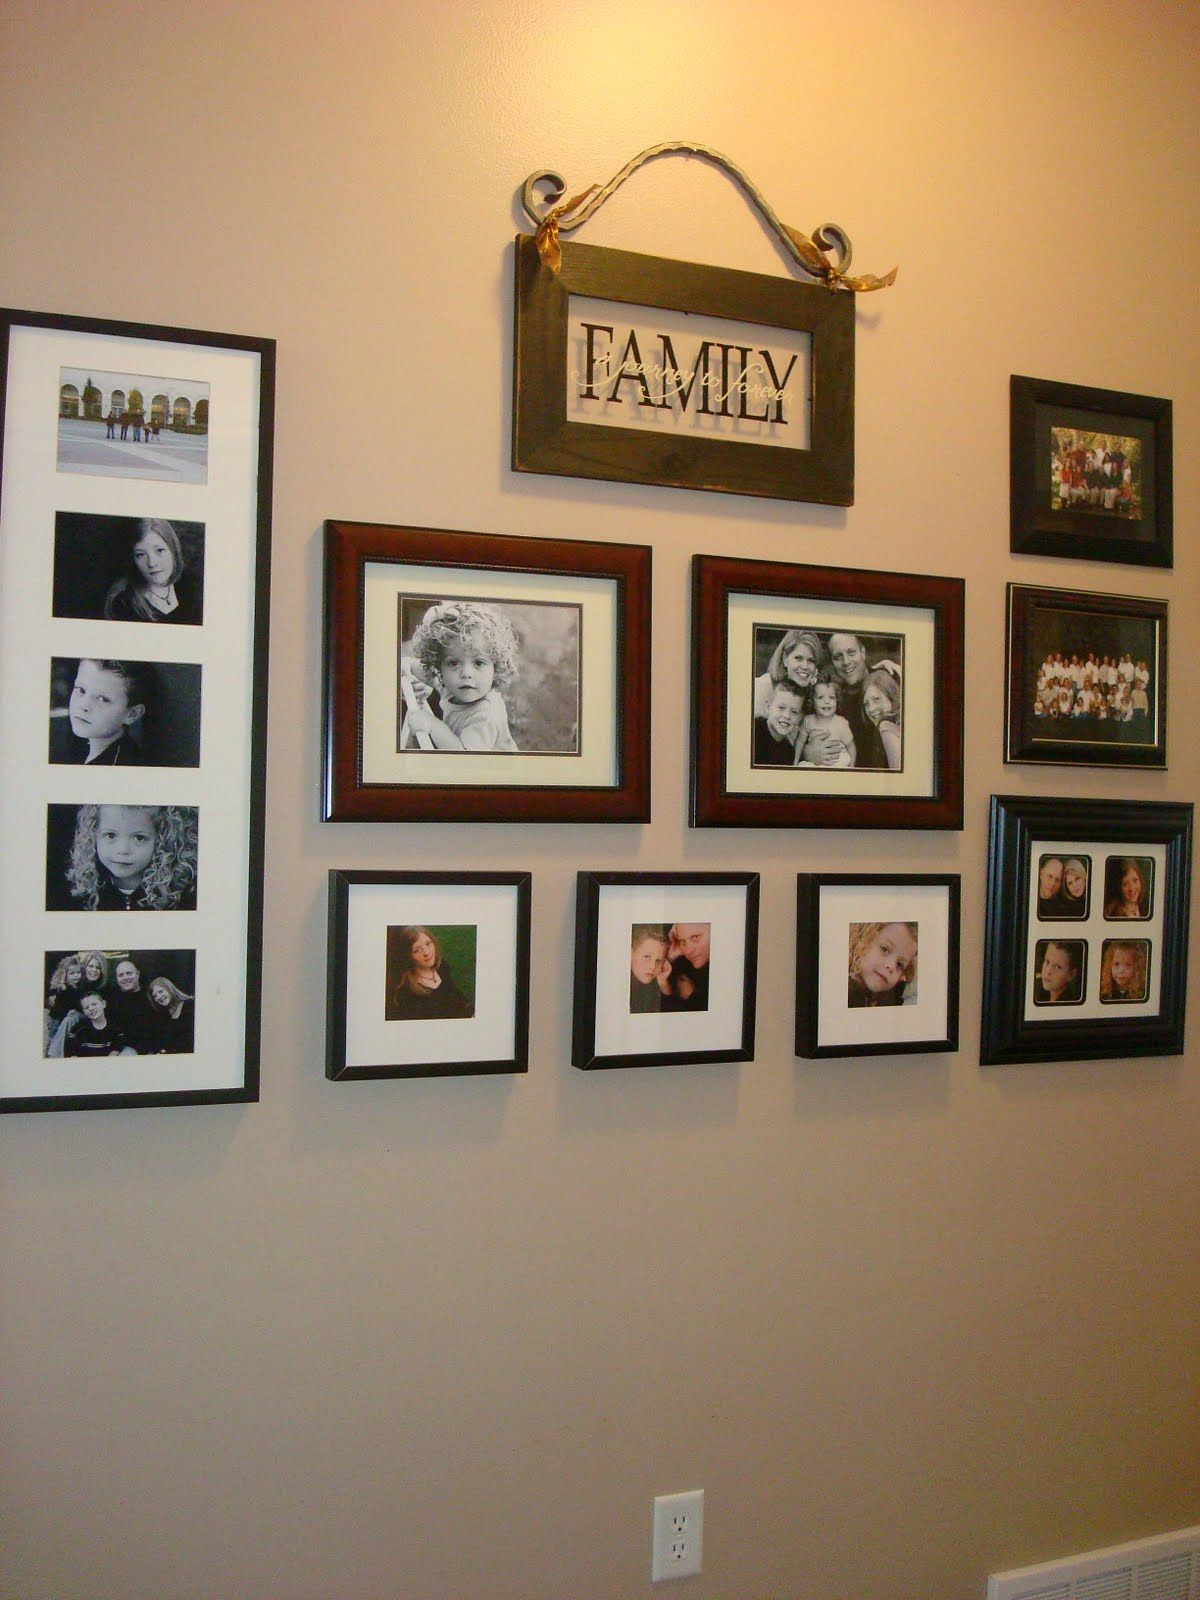 Imaginecozy Arranging Photos On The Wall *The Family Sign Is